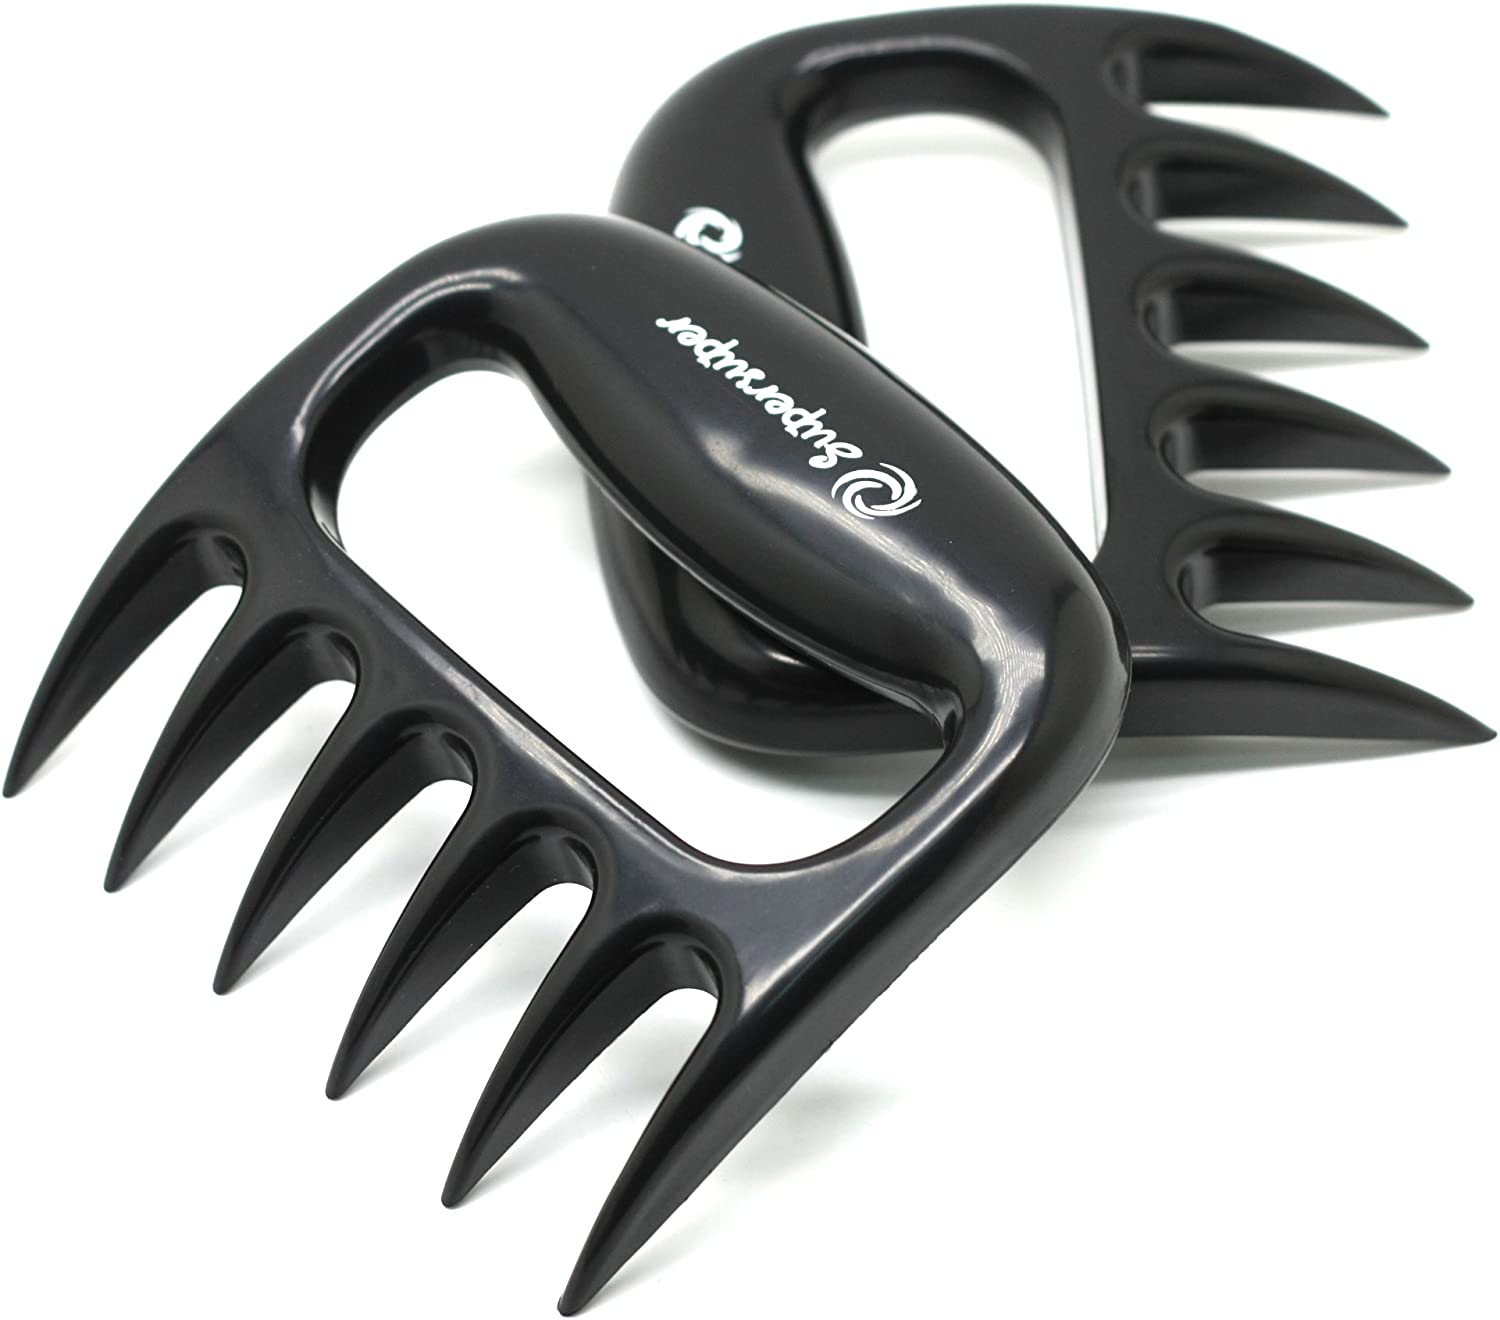 supersuper Meat Claws Pulled Pork Shredder Claws,Barbecue Meat Claw,Shredding Handling & Carving Food,BBQ Tool 71kTNAVi2BzL